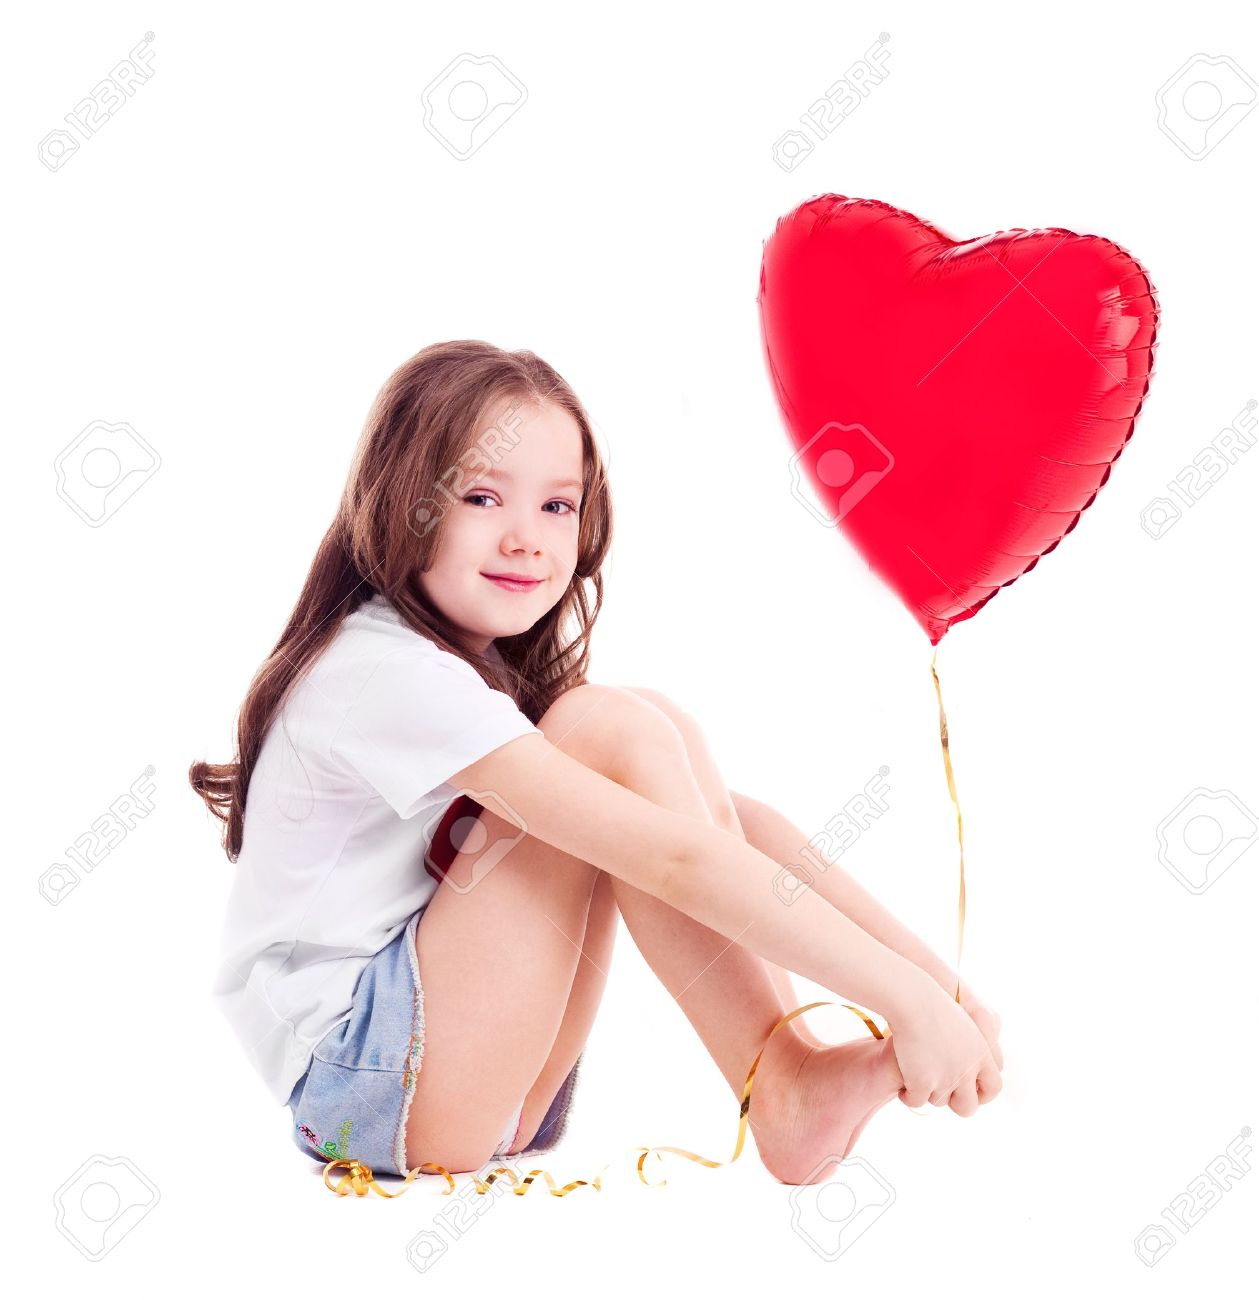 cute six year old girl  with a big red heart-shaped balloon, isolated against white background Stock Photo - 11958662